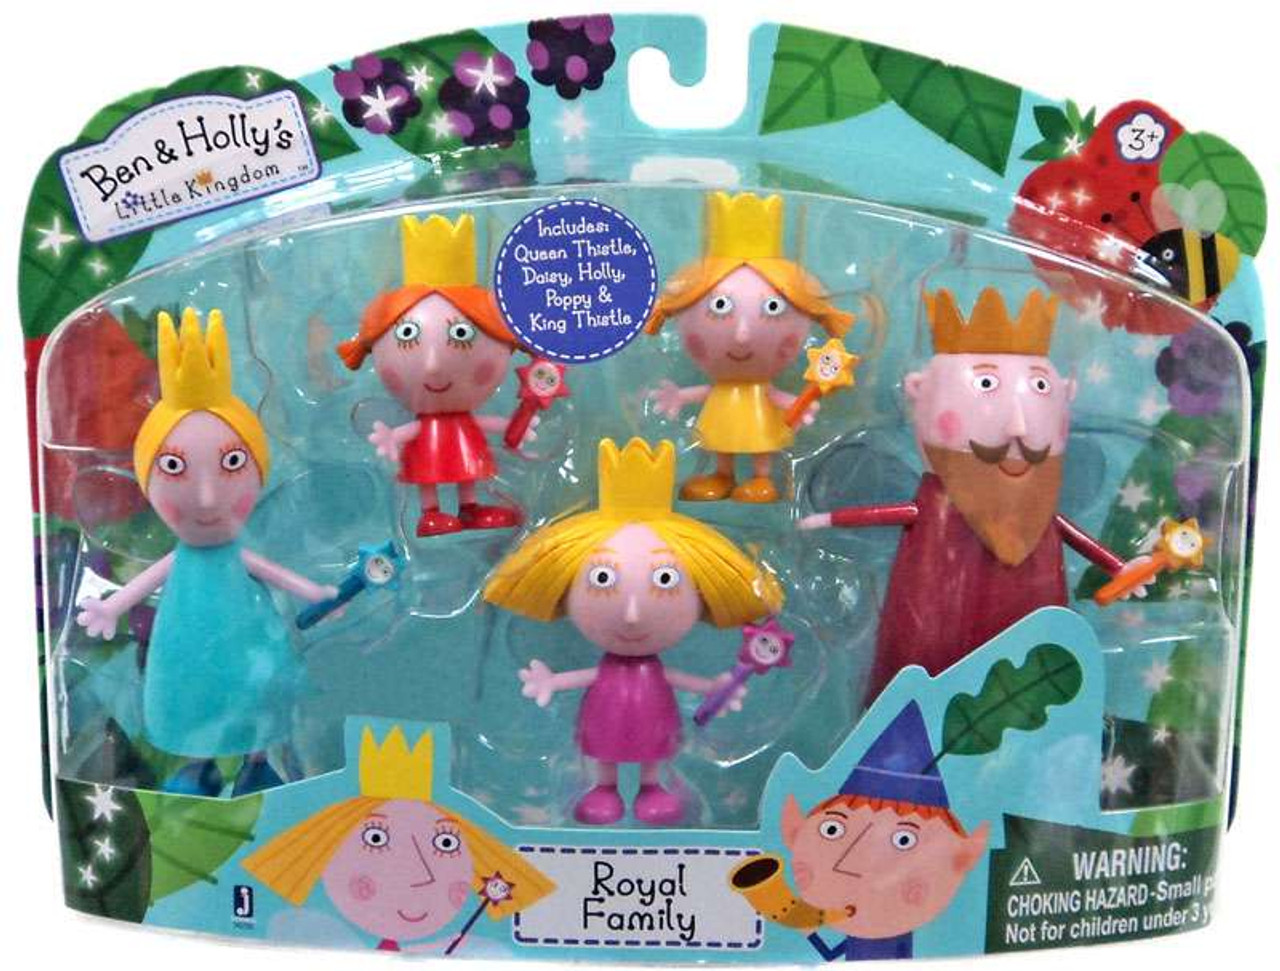 ben hollys little kingdom royal family exclusive mini figure 5 pack